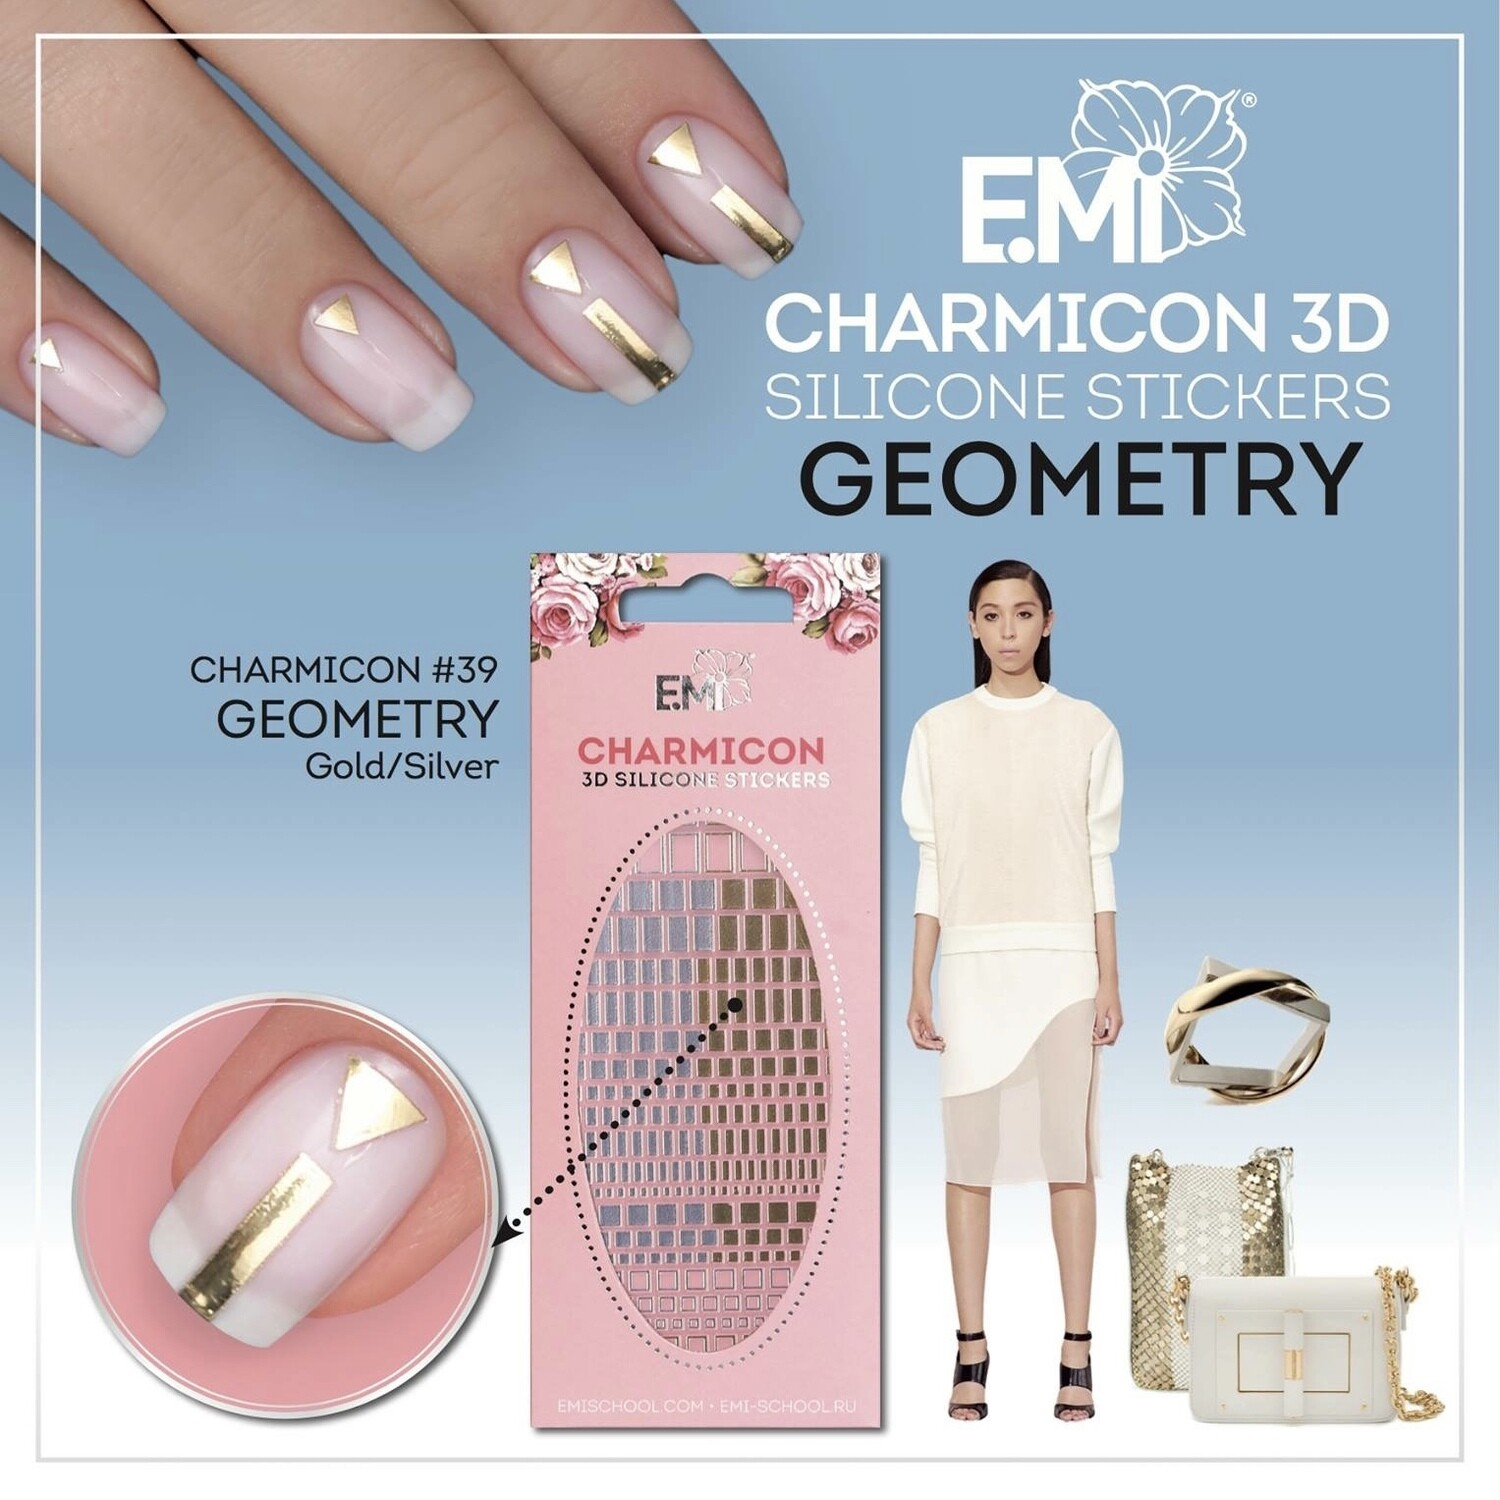 Charmicon Silicone Stickers #39 Geometry Gold/Silver